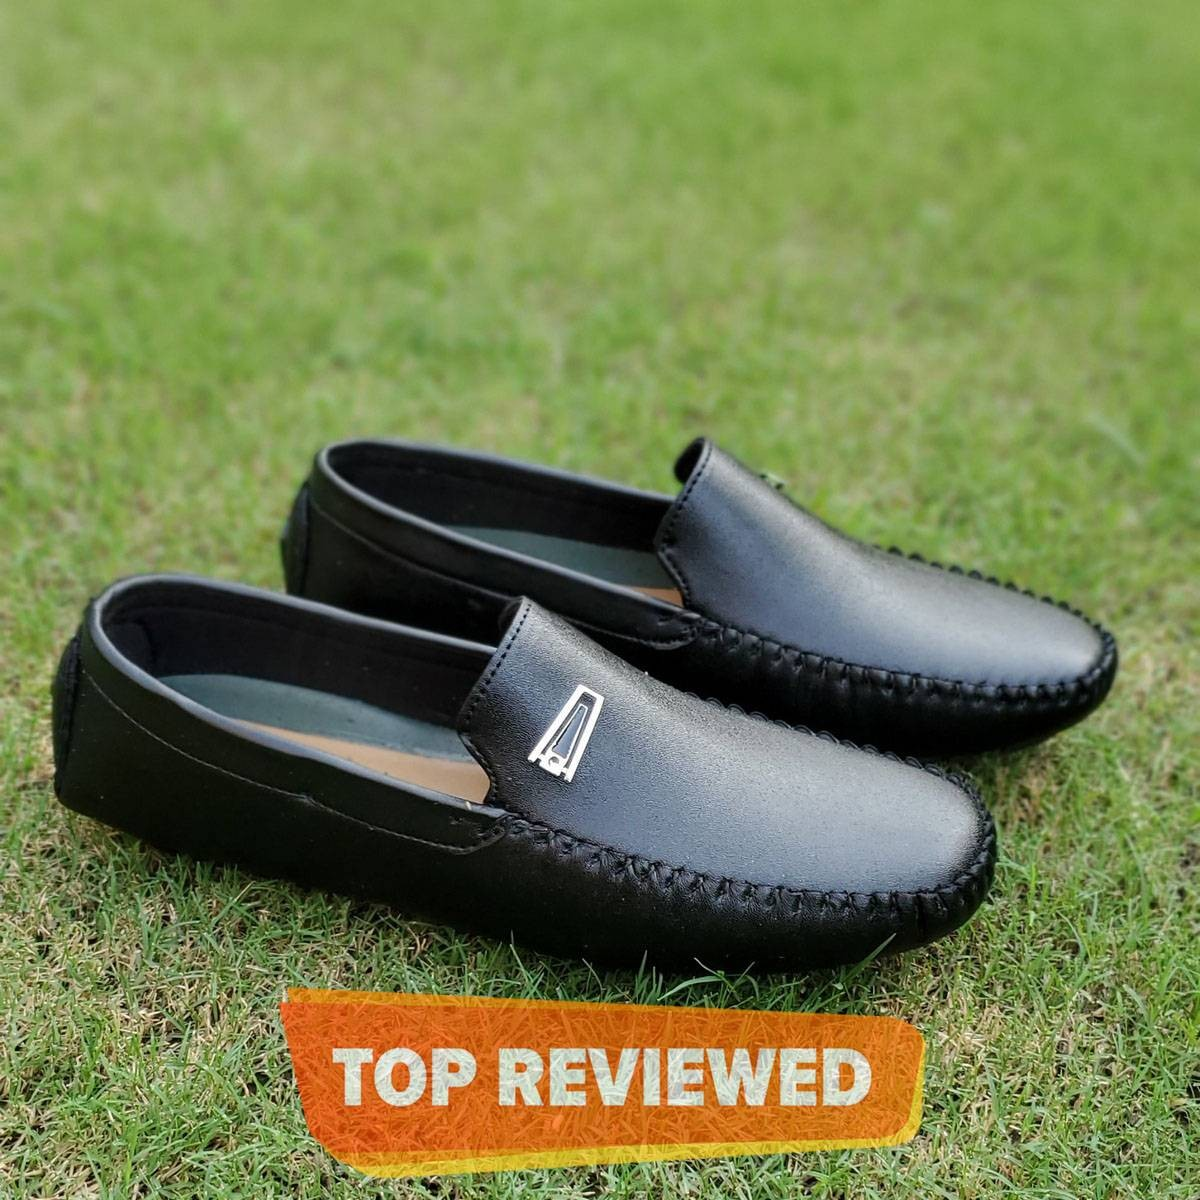 Black Importia Synthetic Leather Loafers For Men